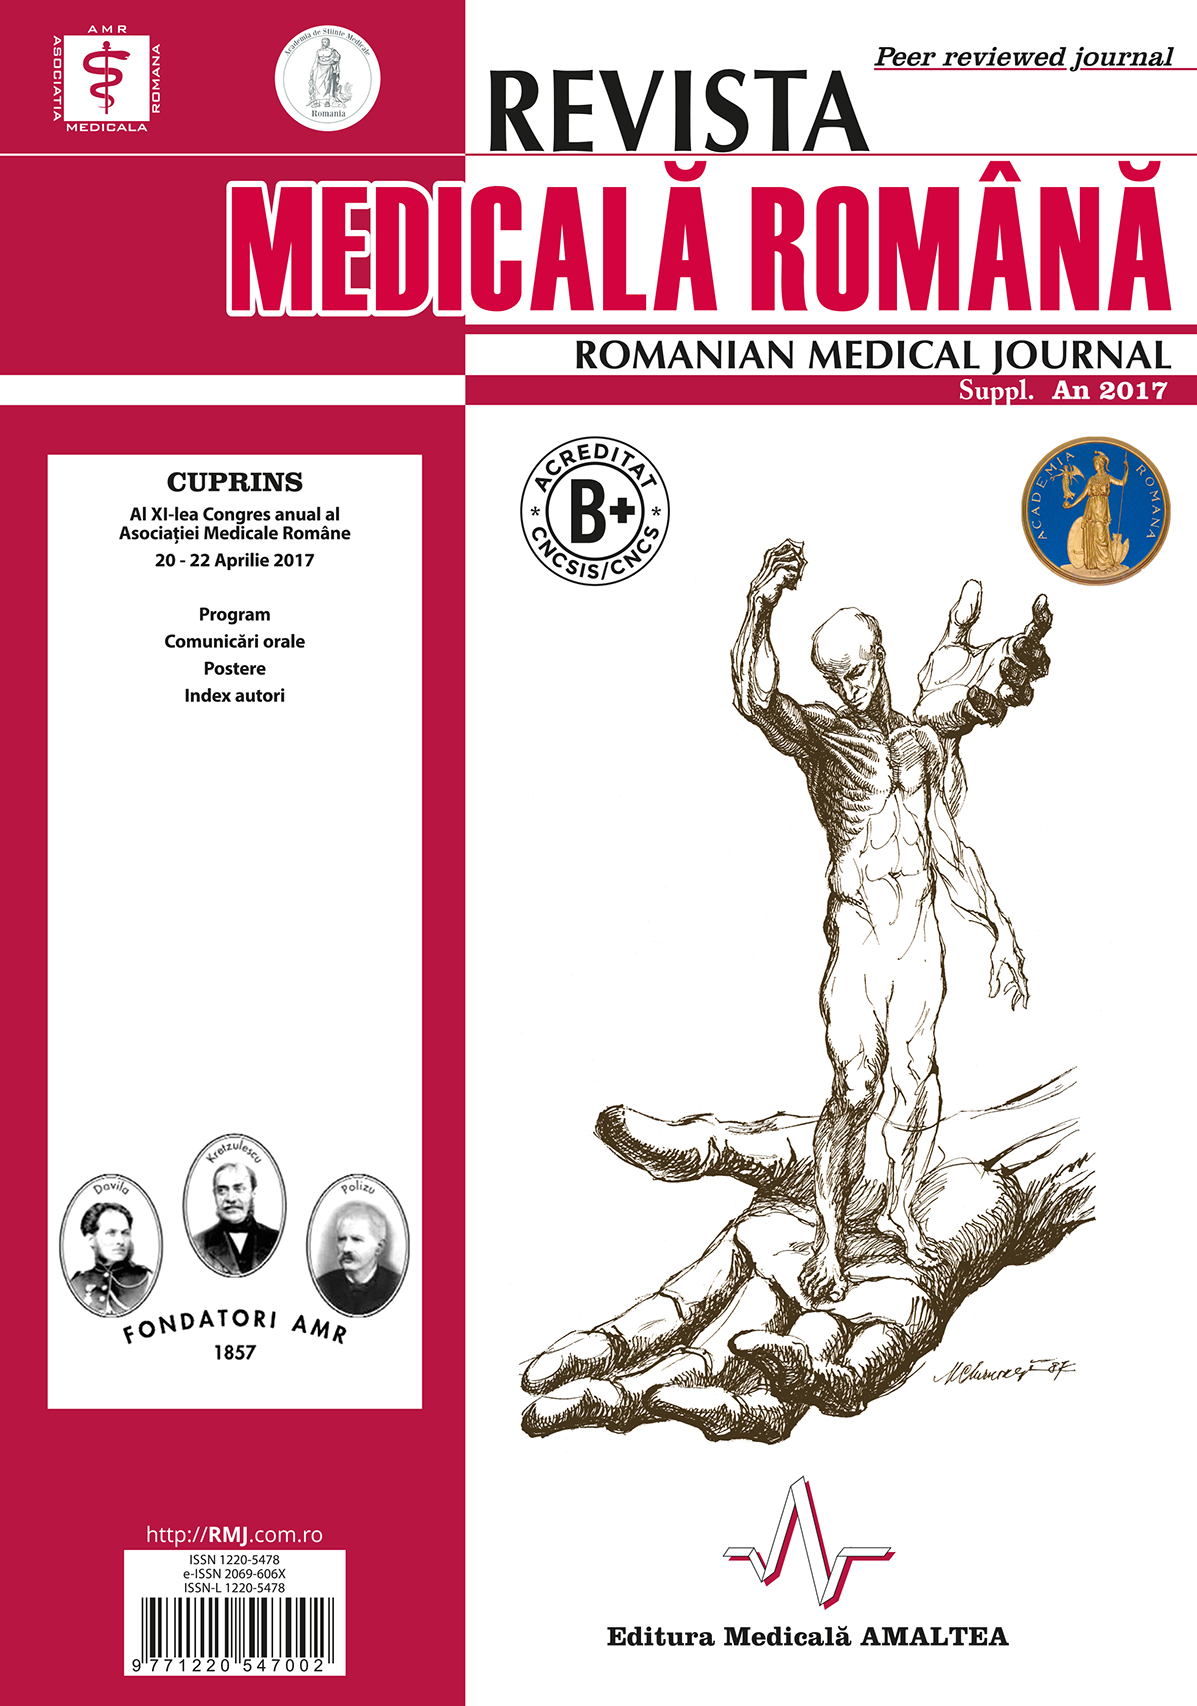 REVISTA MEDICALA ROMANA - Romanian Medical Journal, Vol. LXIV, Supliment, Year 2017